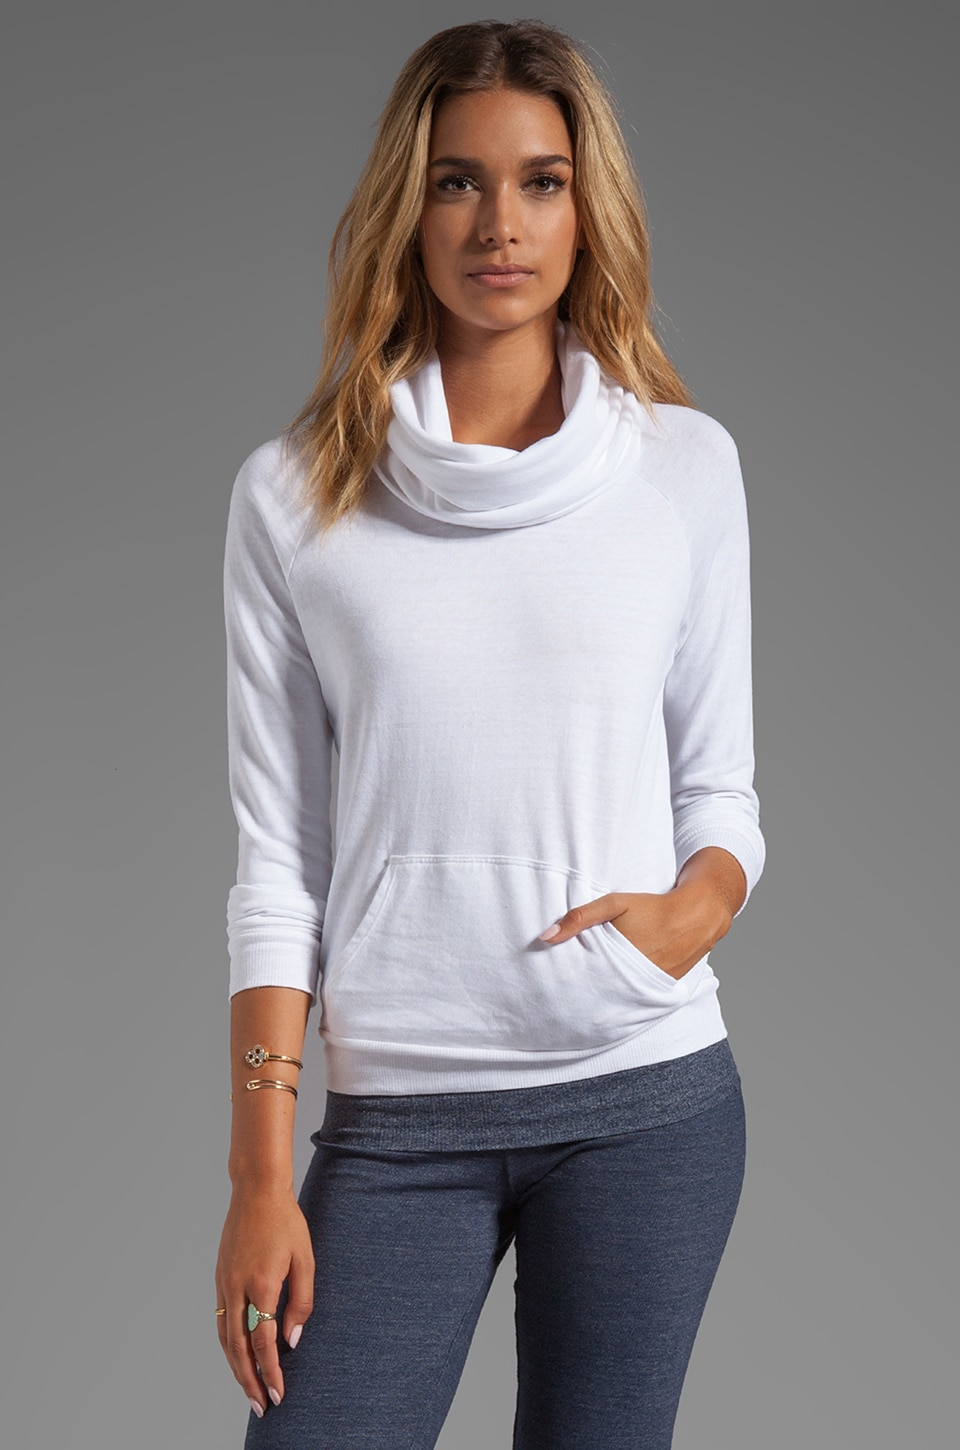 SOLOW Dancer's Warm-Up Fleece Raglan Pullover in White